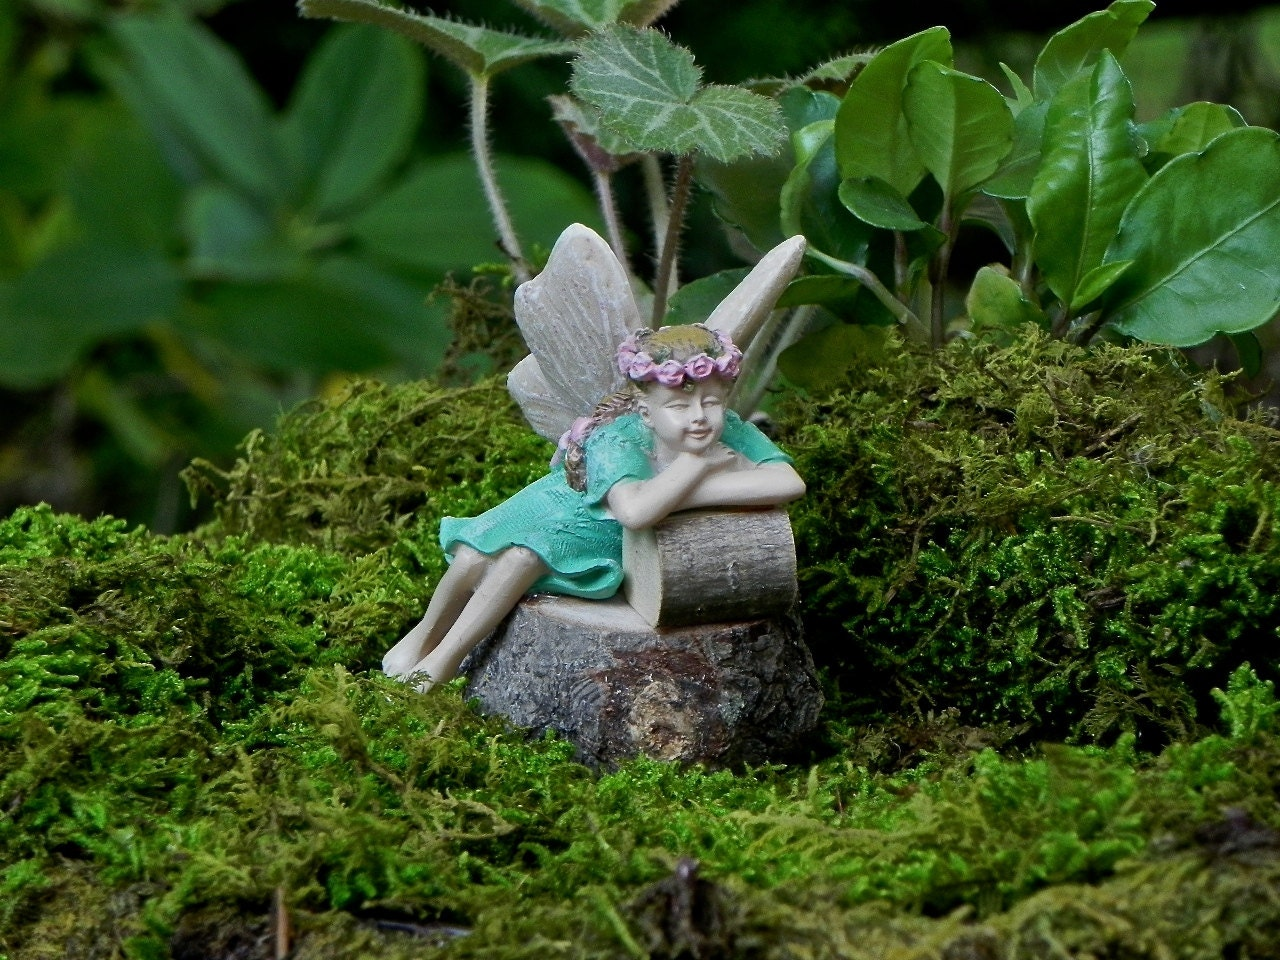 Fairy garden fairy sleeping figurine miniature garden for Fairy garden figurines